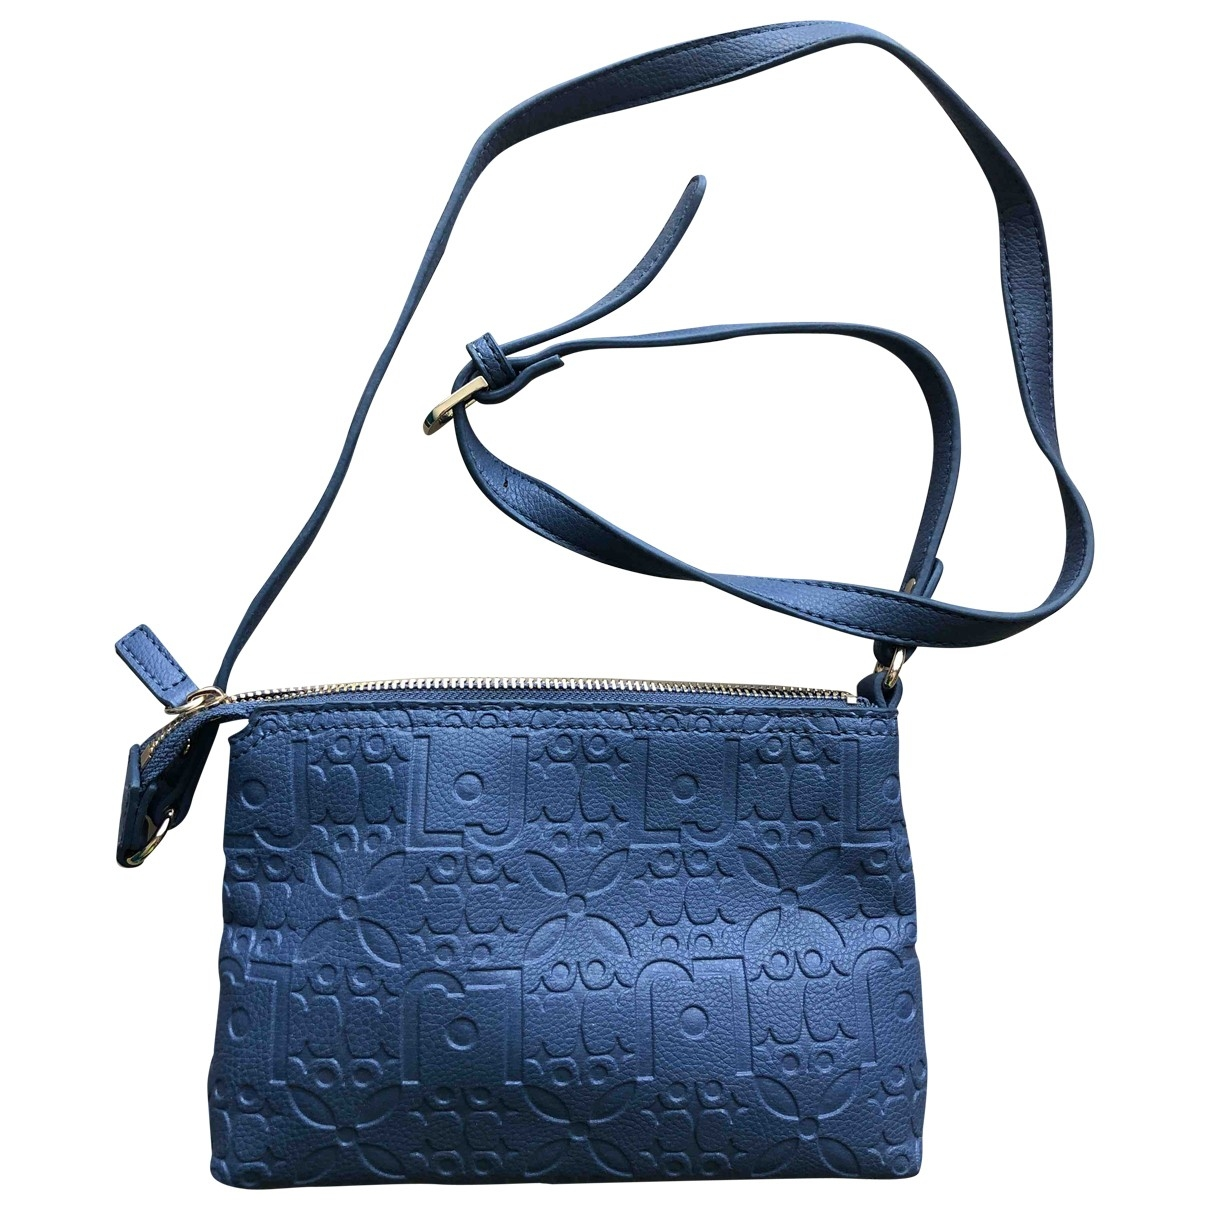 Liu.jo \N Clutch in  Blau Polyester